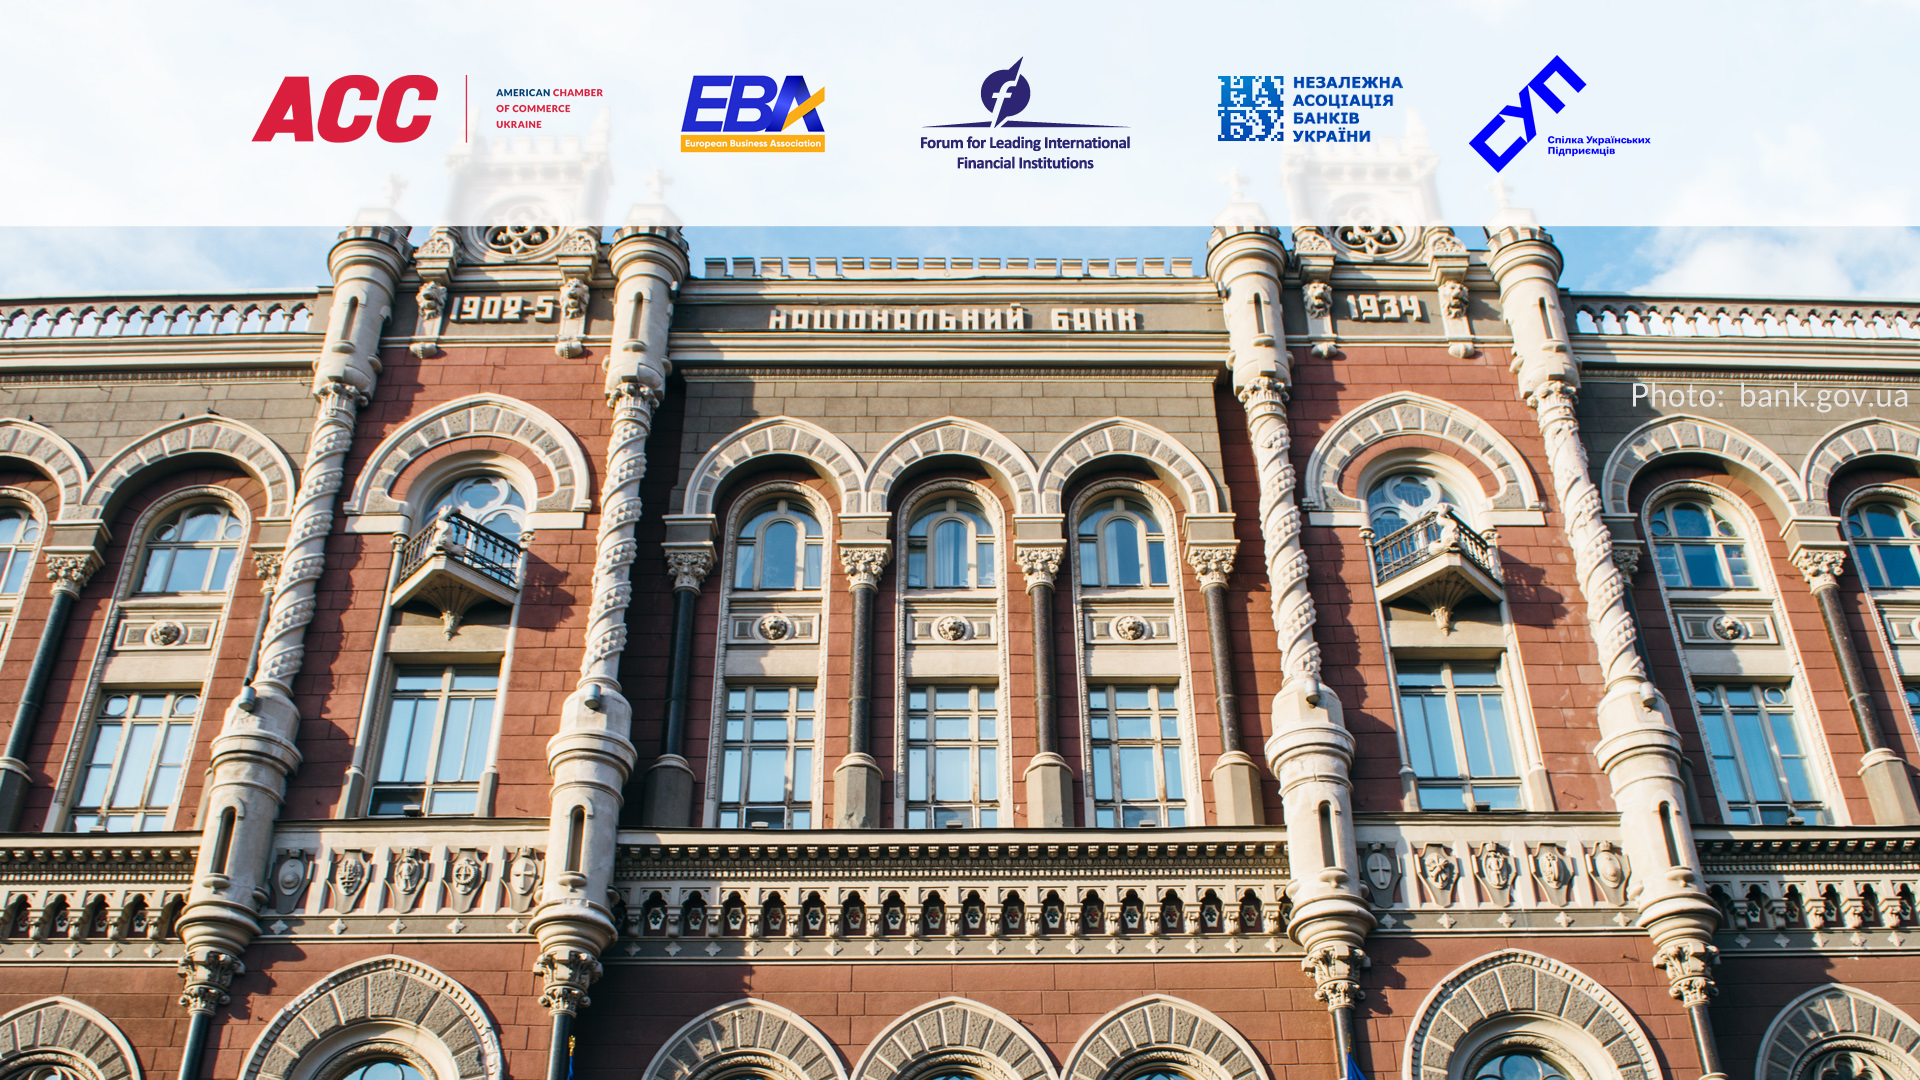 Joint Statement of the Business Community The Political Pressure in Forcing the NBU Governor's Resignation Undermines Investors' Trust in Ukraine